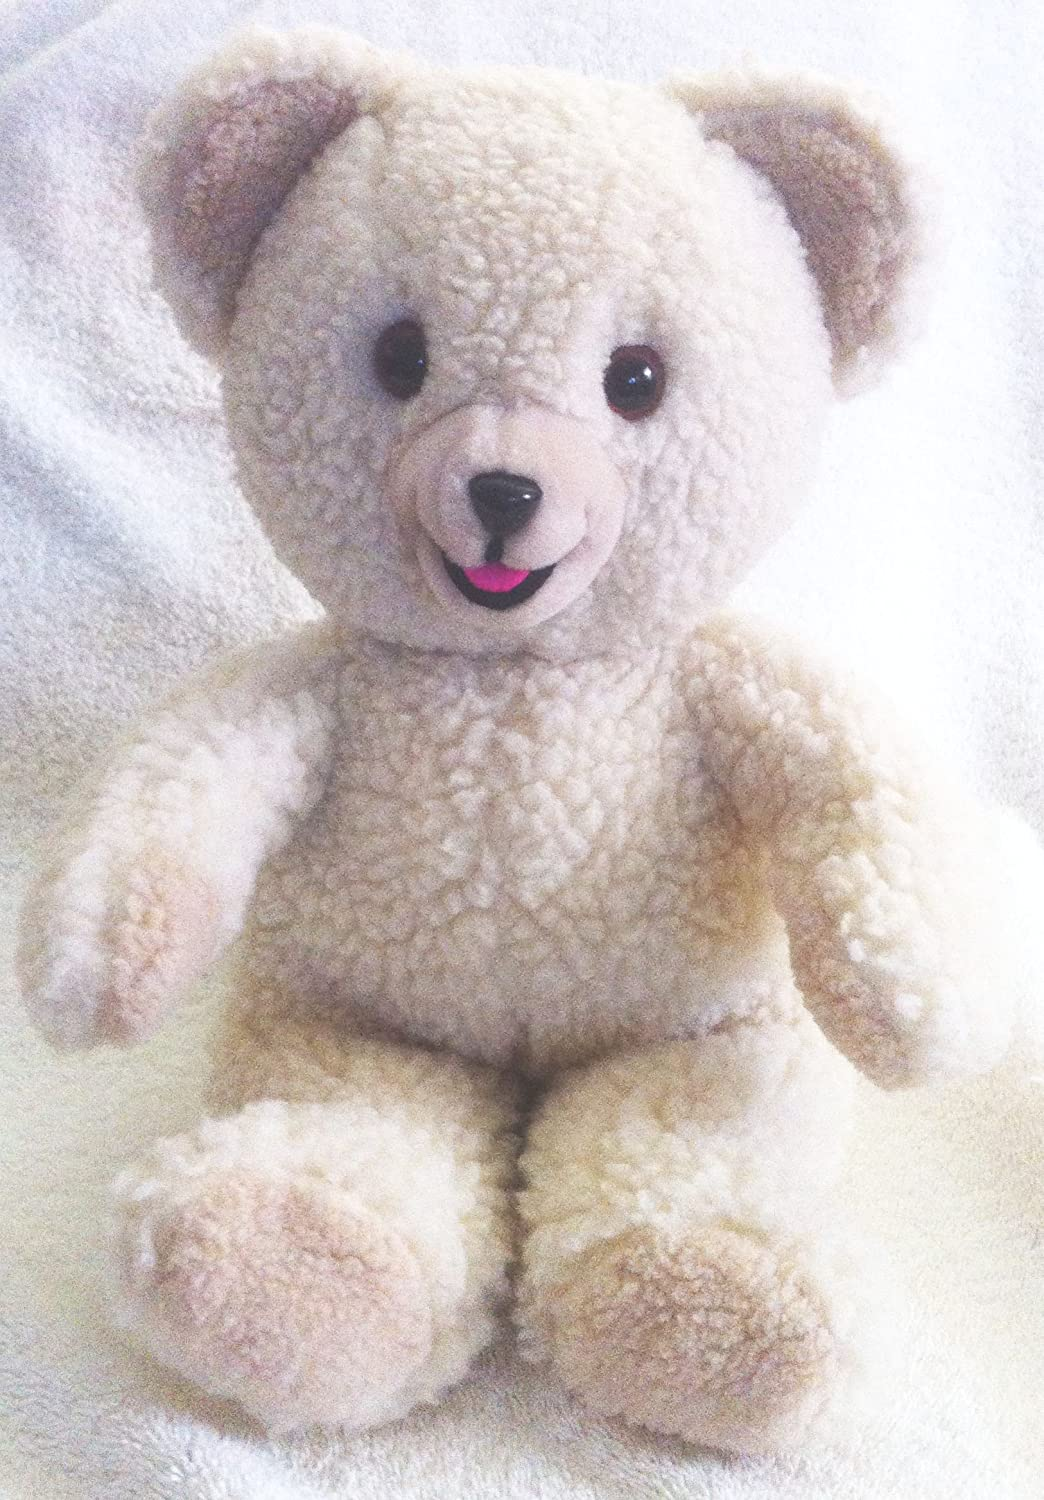 Vintage 1986 Small Snuggle Bear Toy with Night Cap in Great Condition